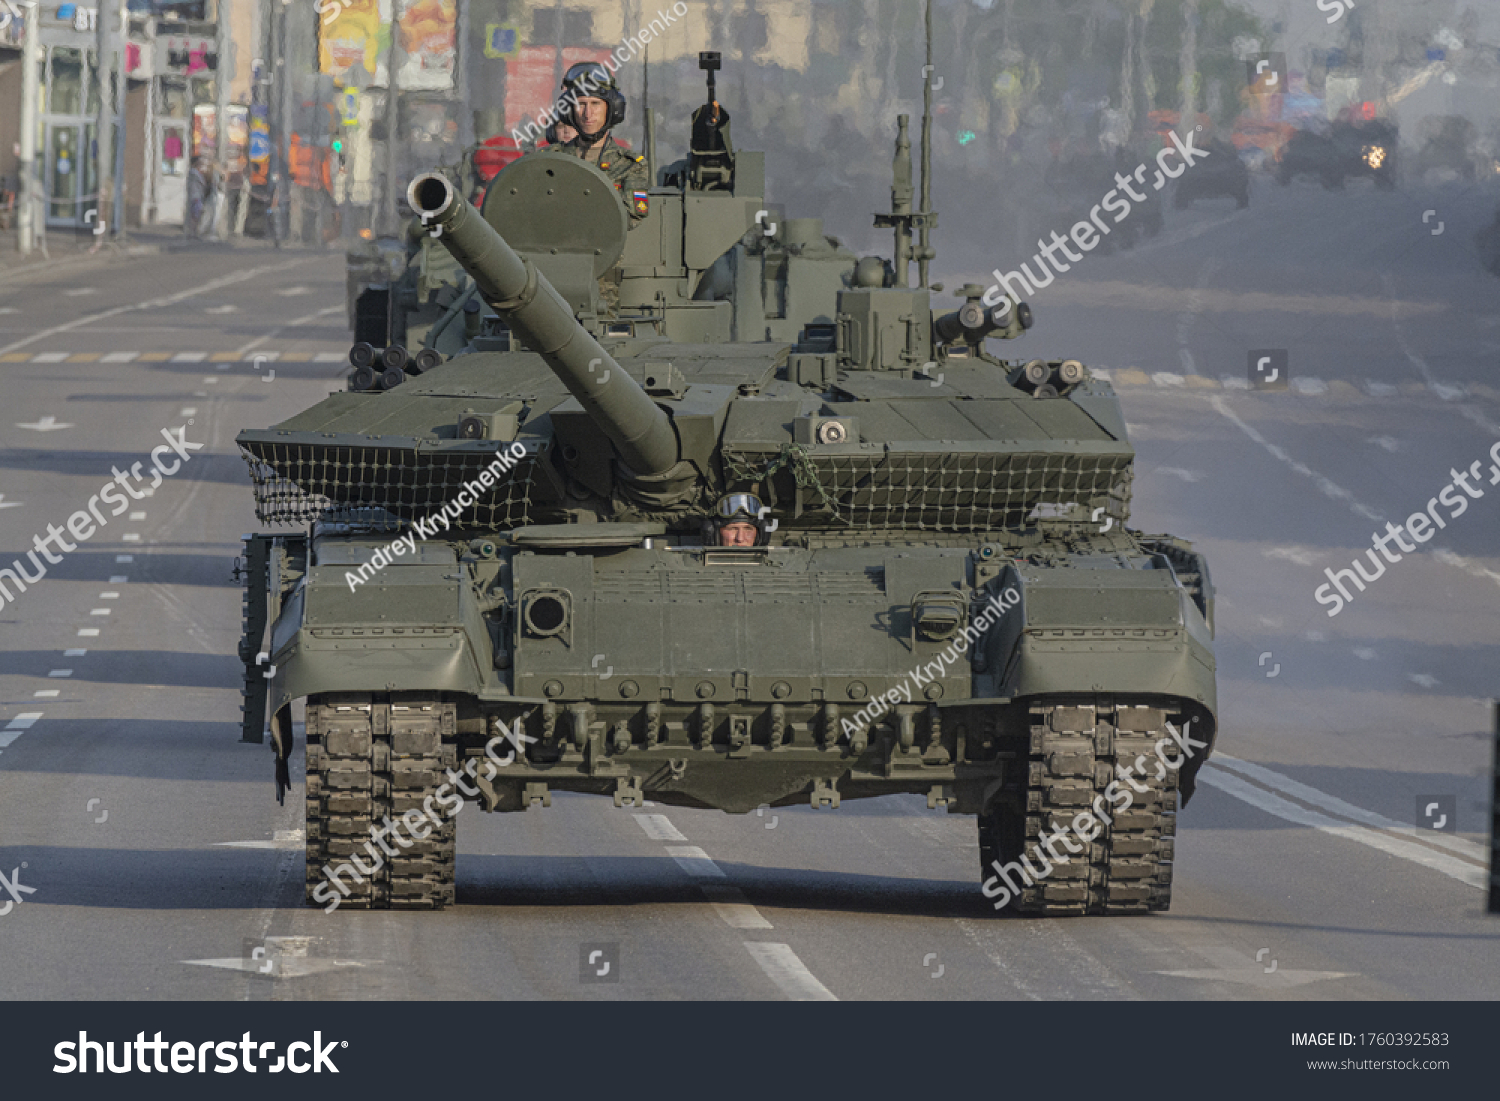 https://image.shutterstock.com/z/stock-photo-june-moscow-russia-the-t-m-tank-goes-to-red-square-to-participate-in-the-rehearsal-of-1760392583.jpg